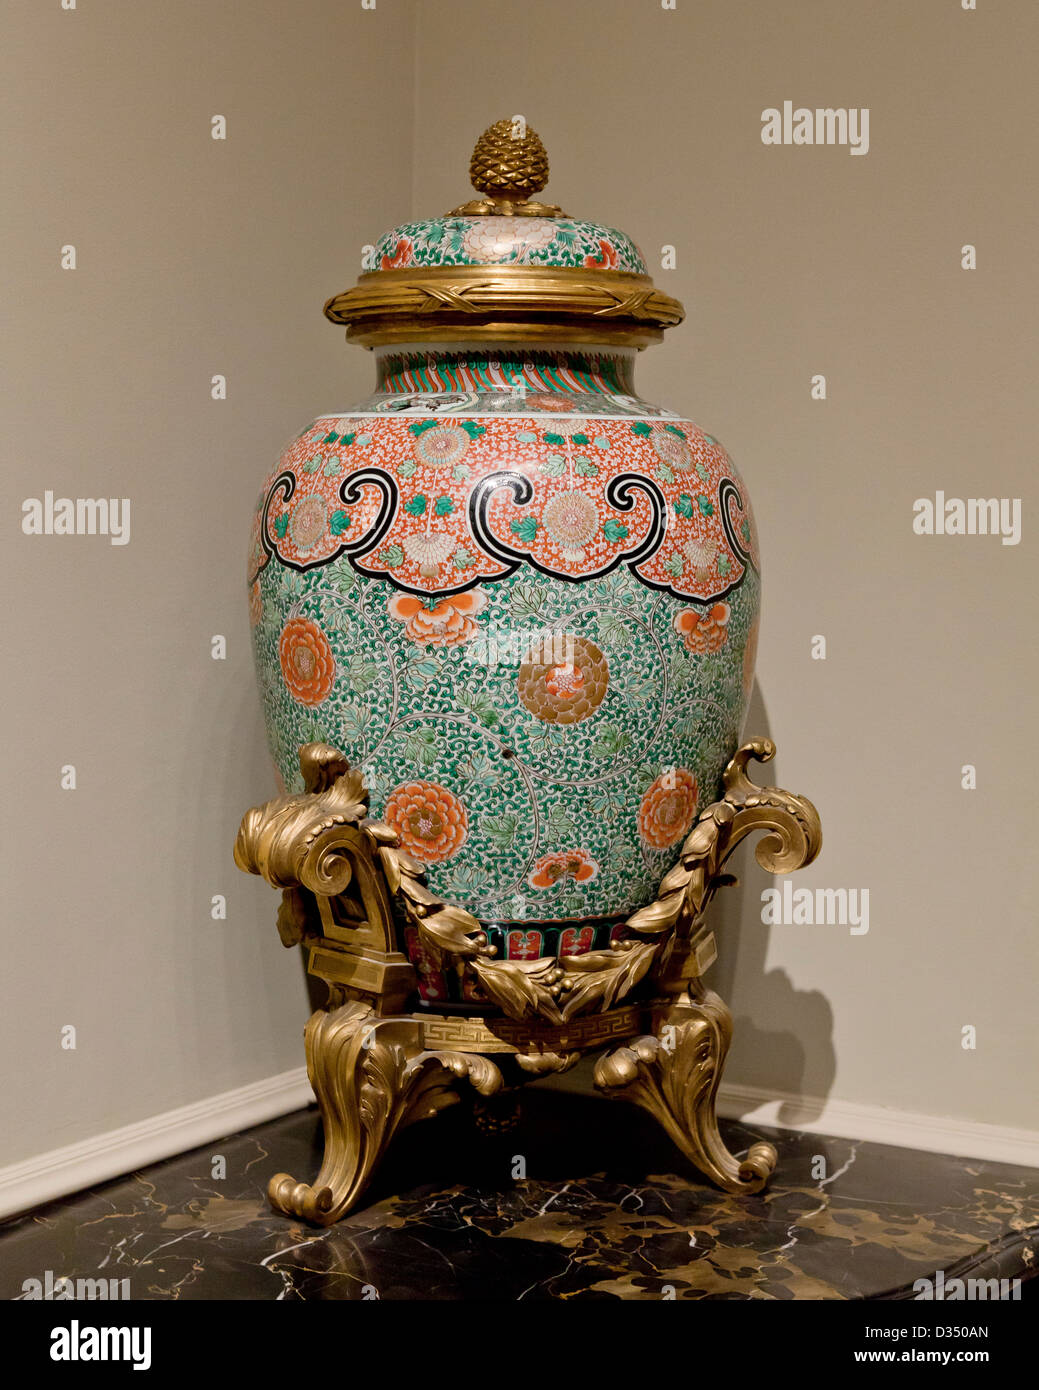 Chinese porcelain jar from the Qing dynasty - circa mid 18th century - Stock Image